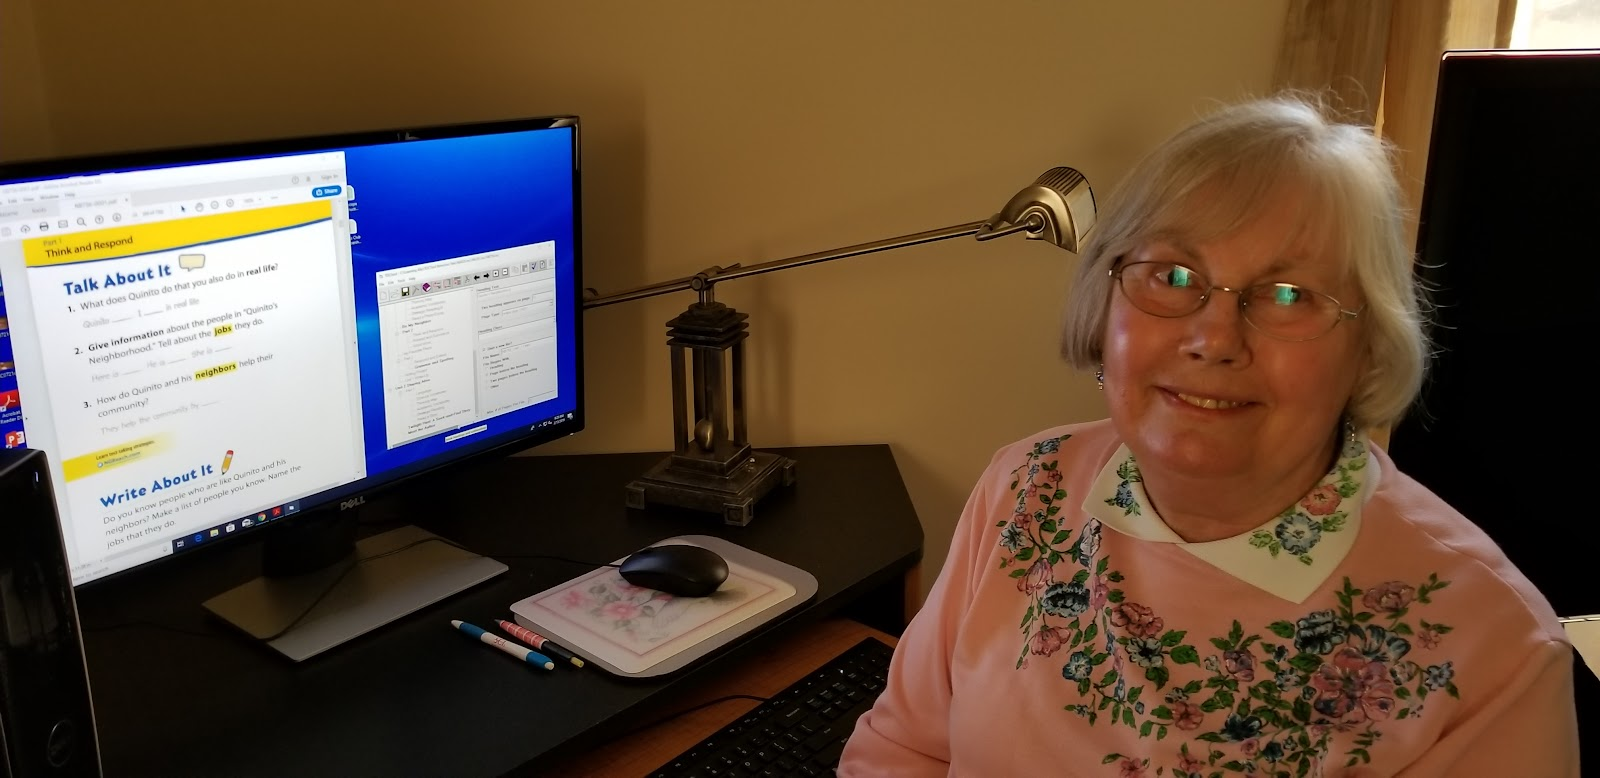 Volunteer Caren Snook smiles as she takes a break from setting up the language arts book (computer screen with book and TOCTool images in background)